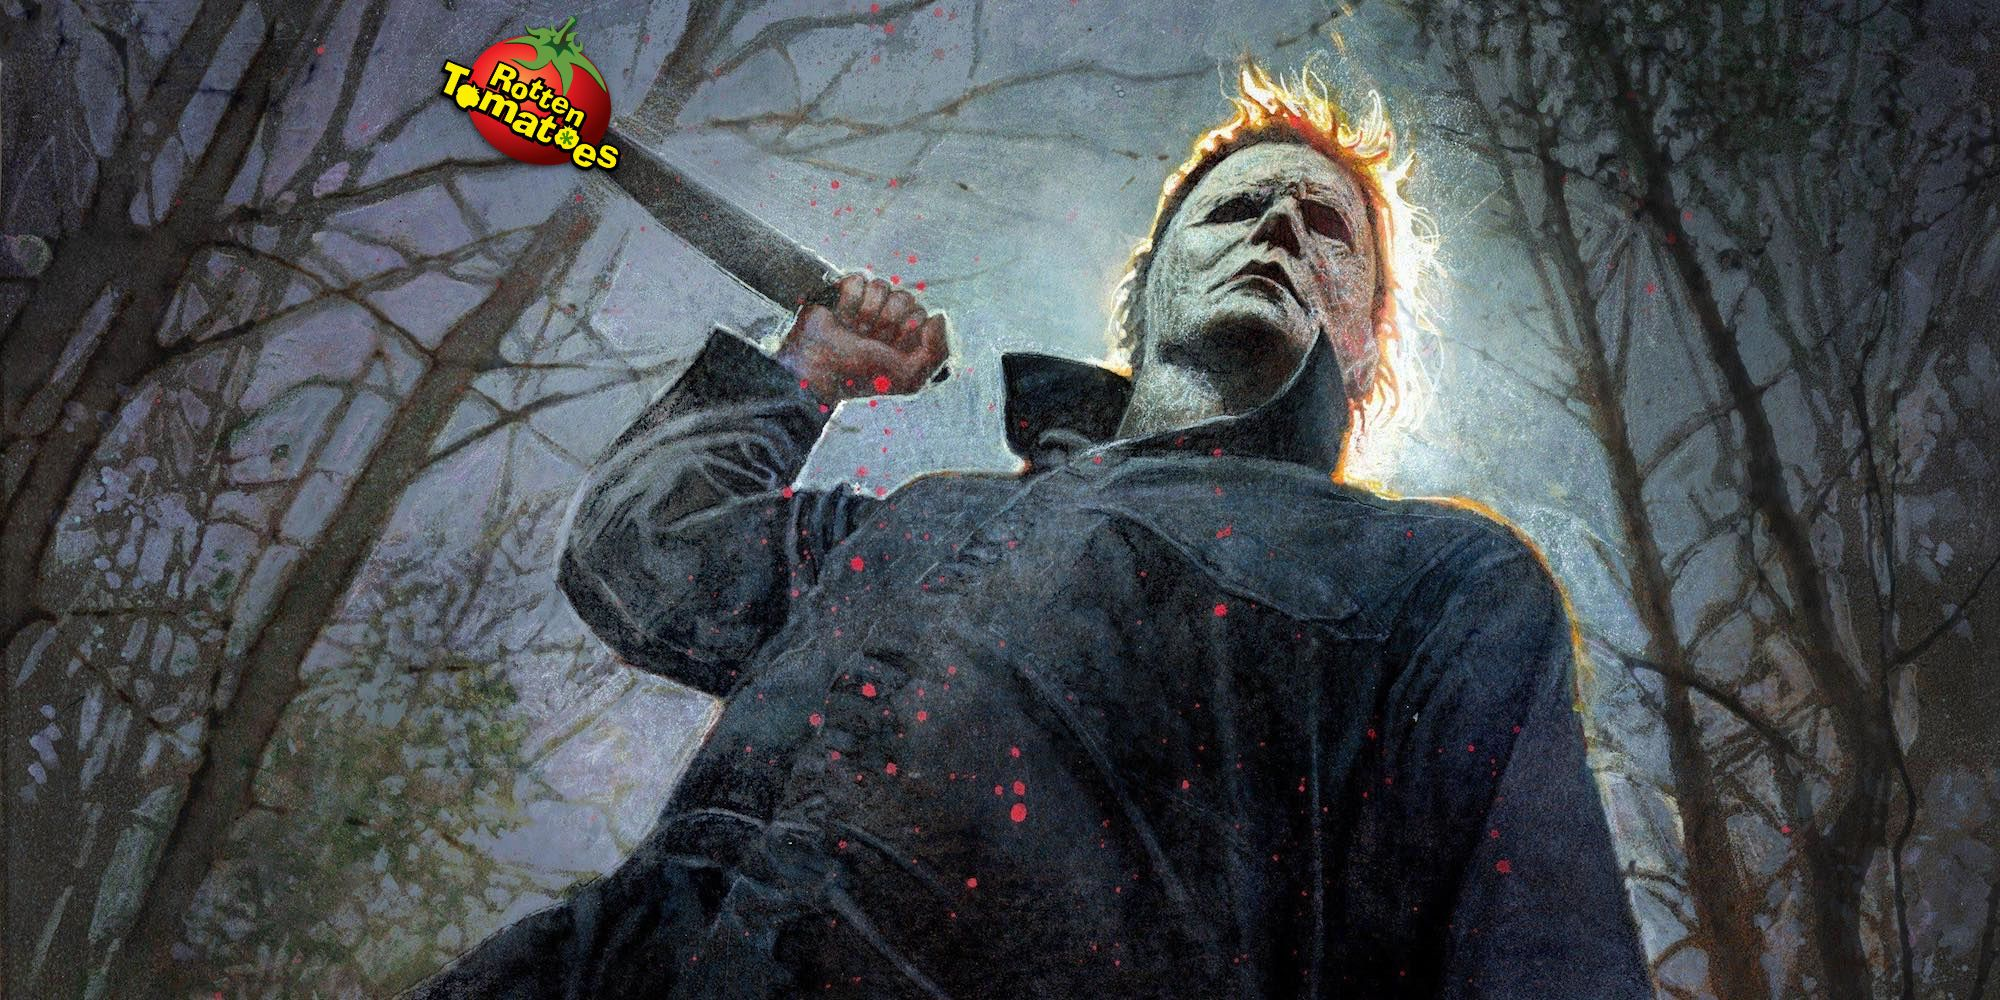 Halloween 2018 Movie Poster: Halloween 2018 Is Certified Fresh On Rotten Tomatoes